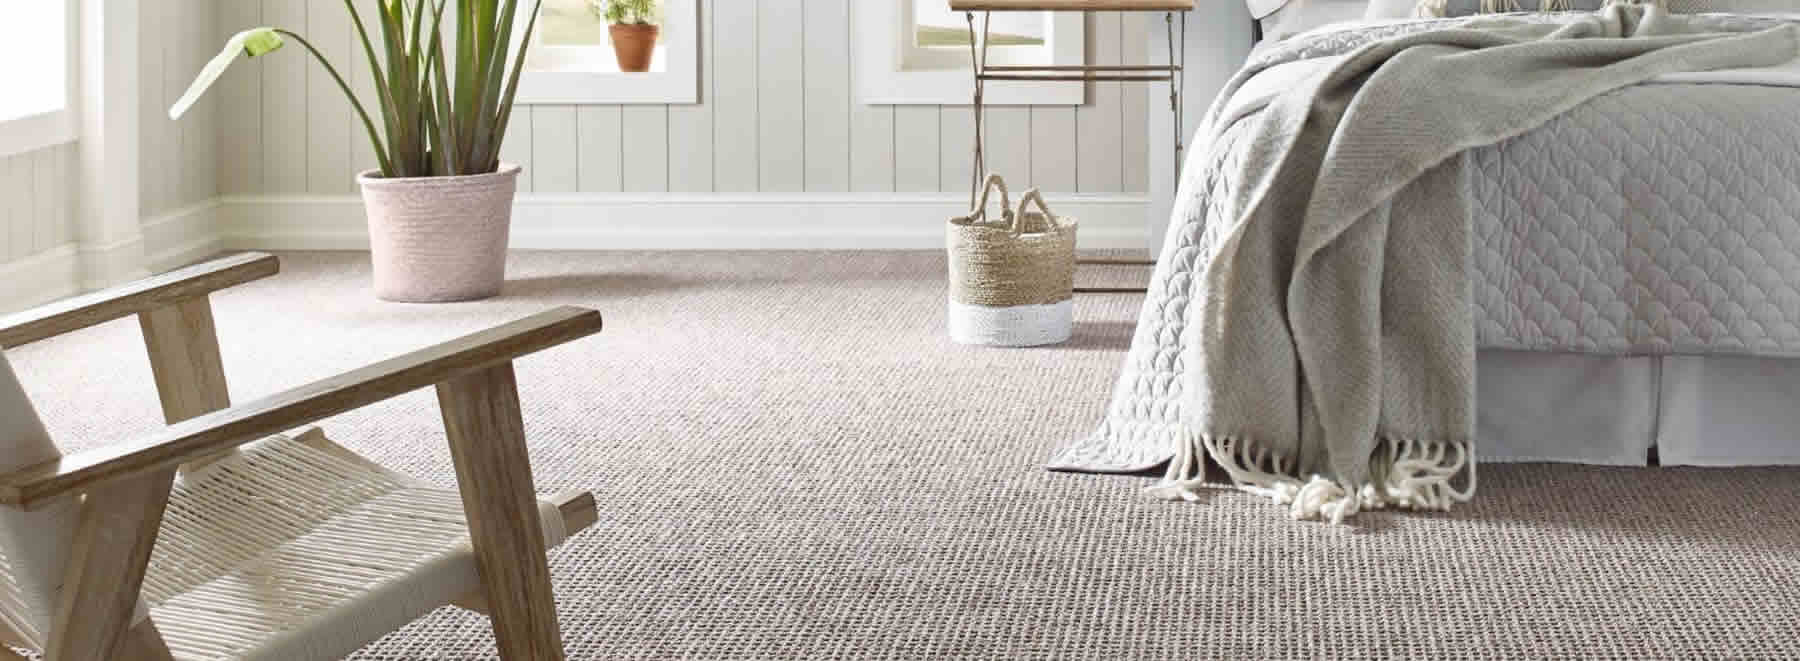 Great flooring products available at Ramsey Flooring of Detroit Lakes